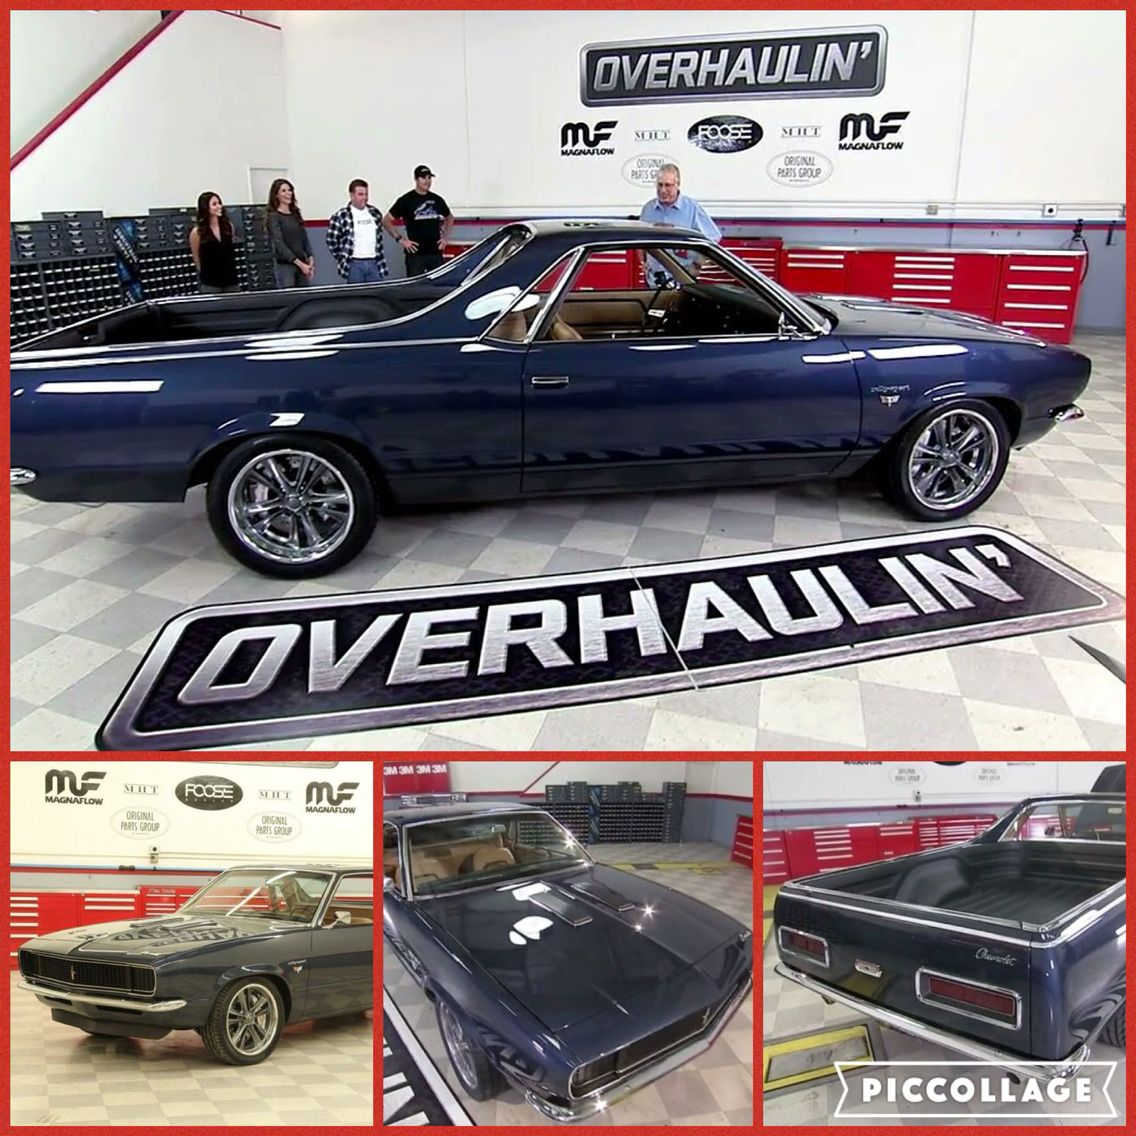 1970 El Camino Led Tail Lights 82 El Camino Creation By Chip Foose From Overhaulin Tv Show 67